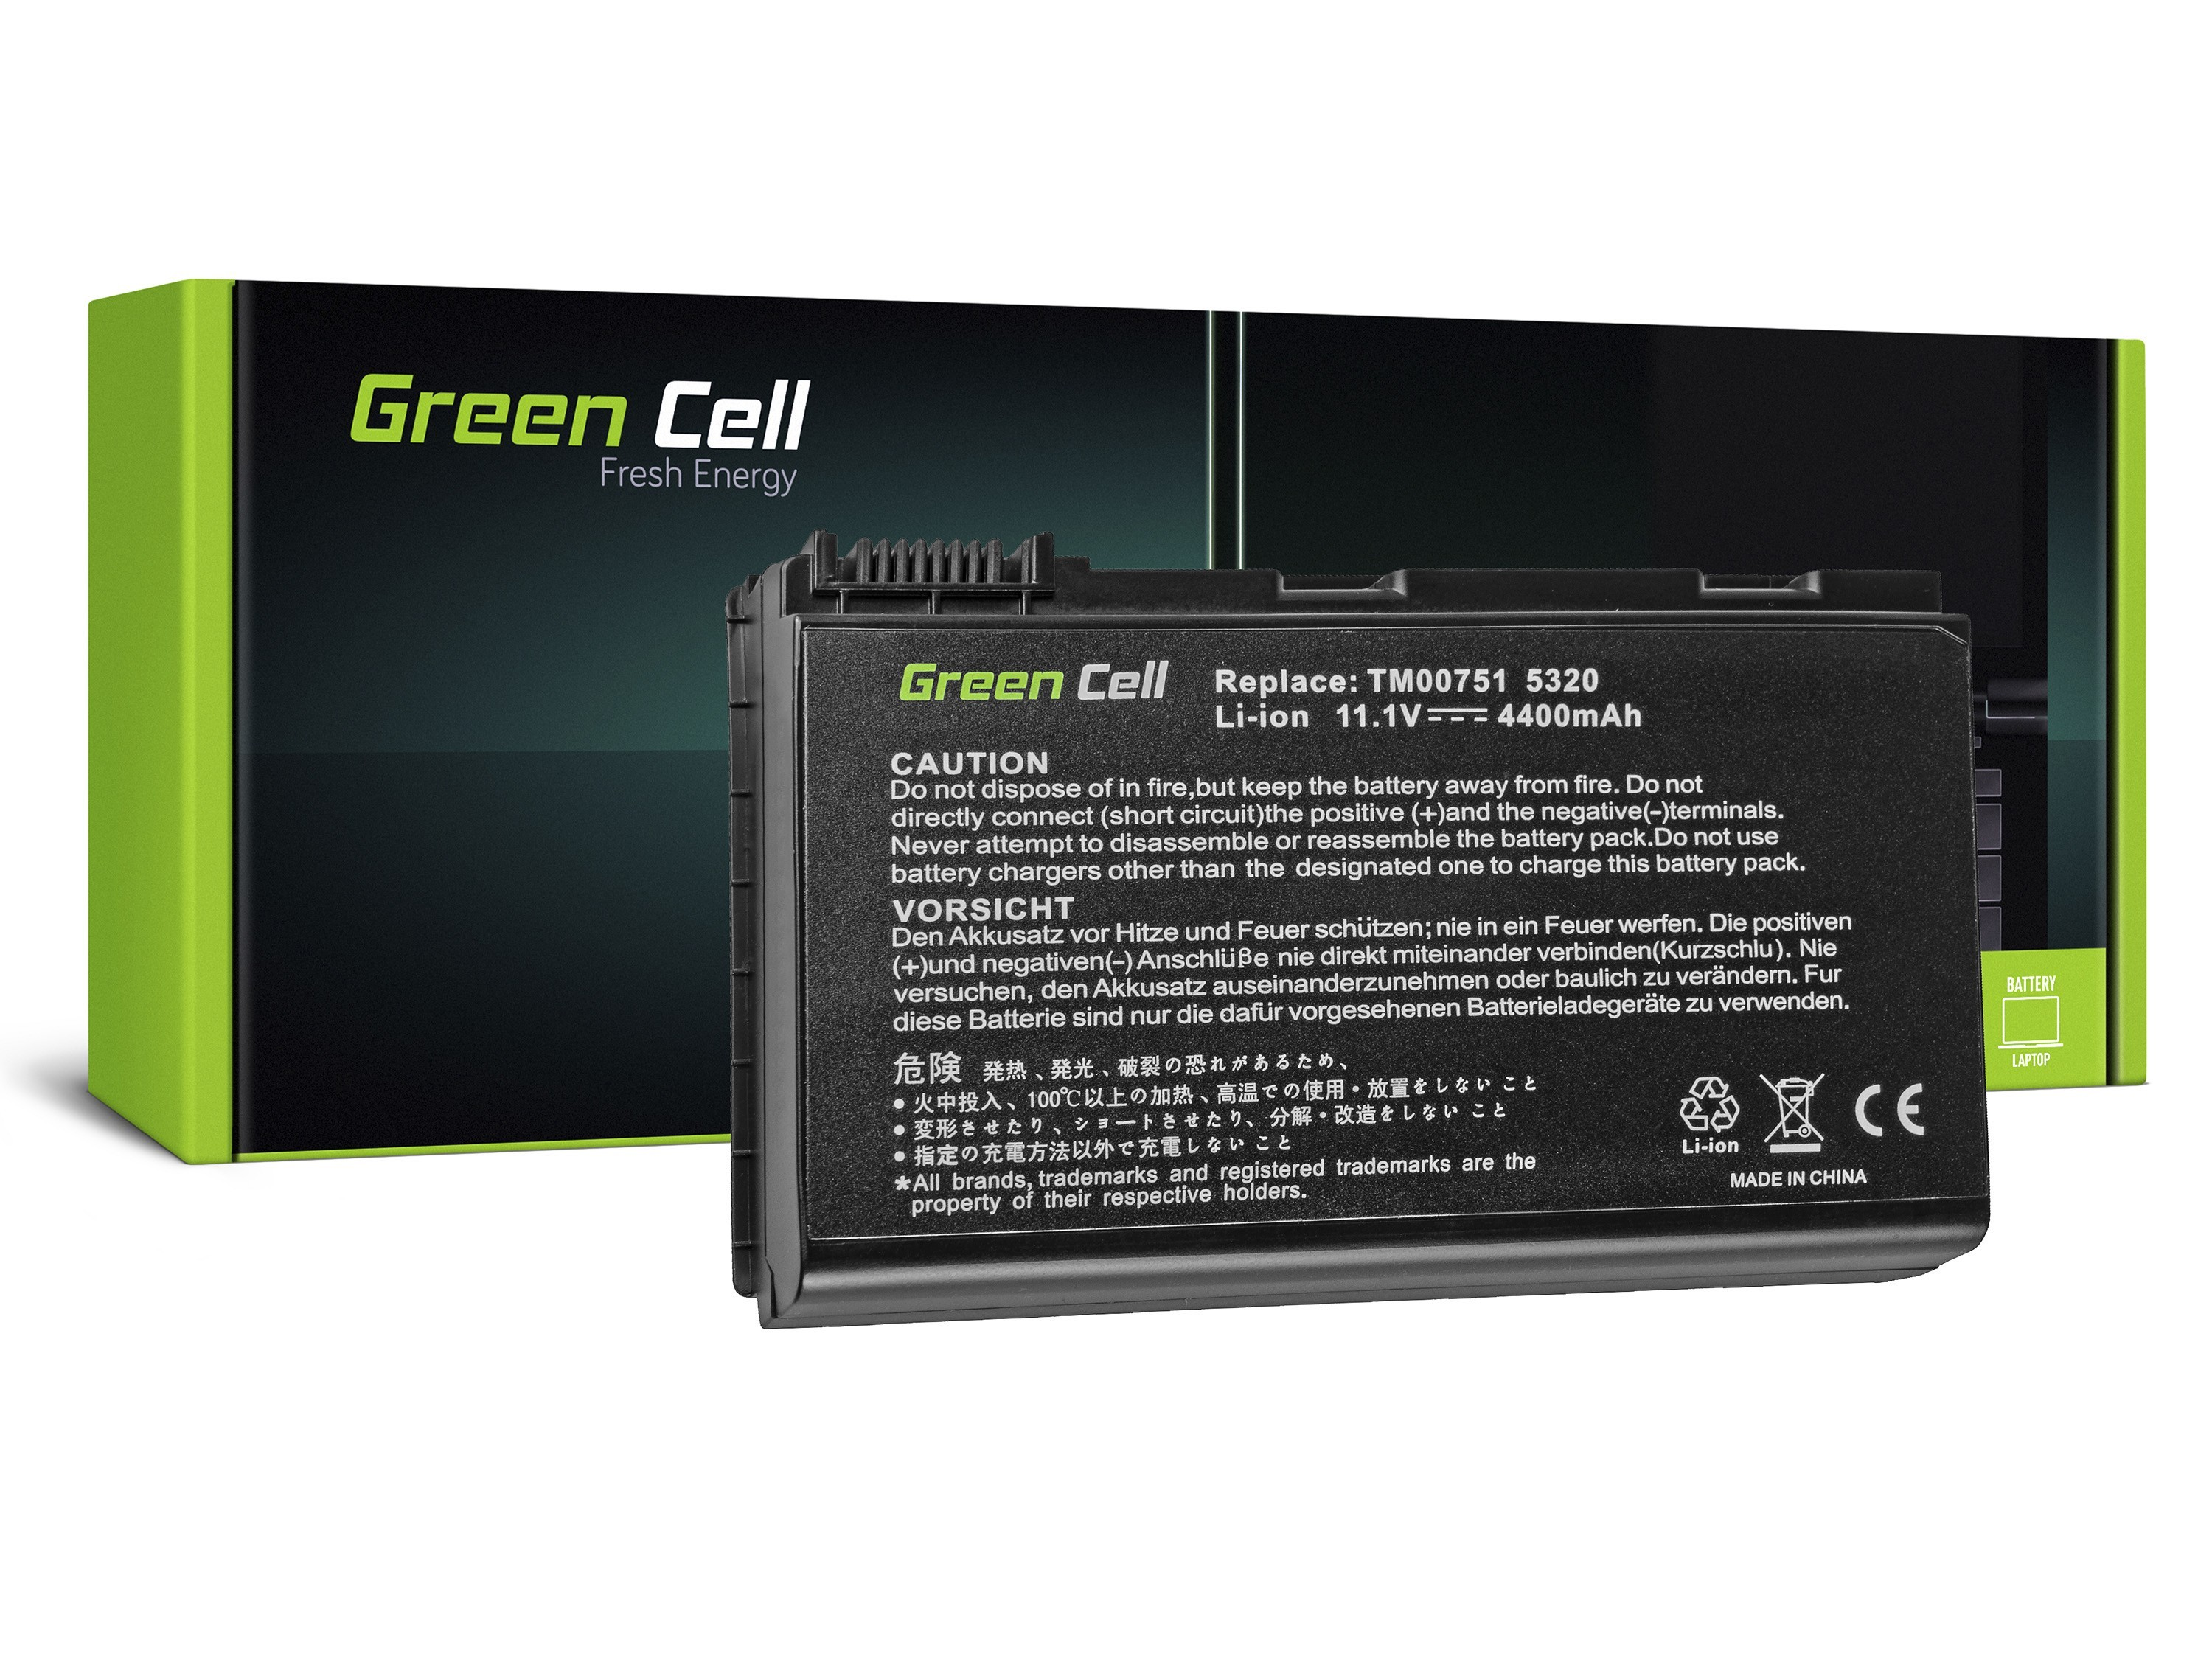 ACER 5630ZG DRIVERS FOR WINDOWS VISTA